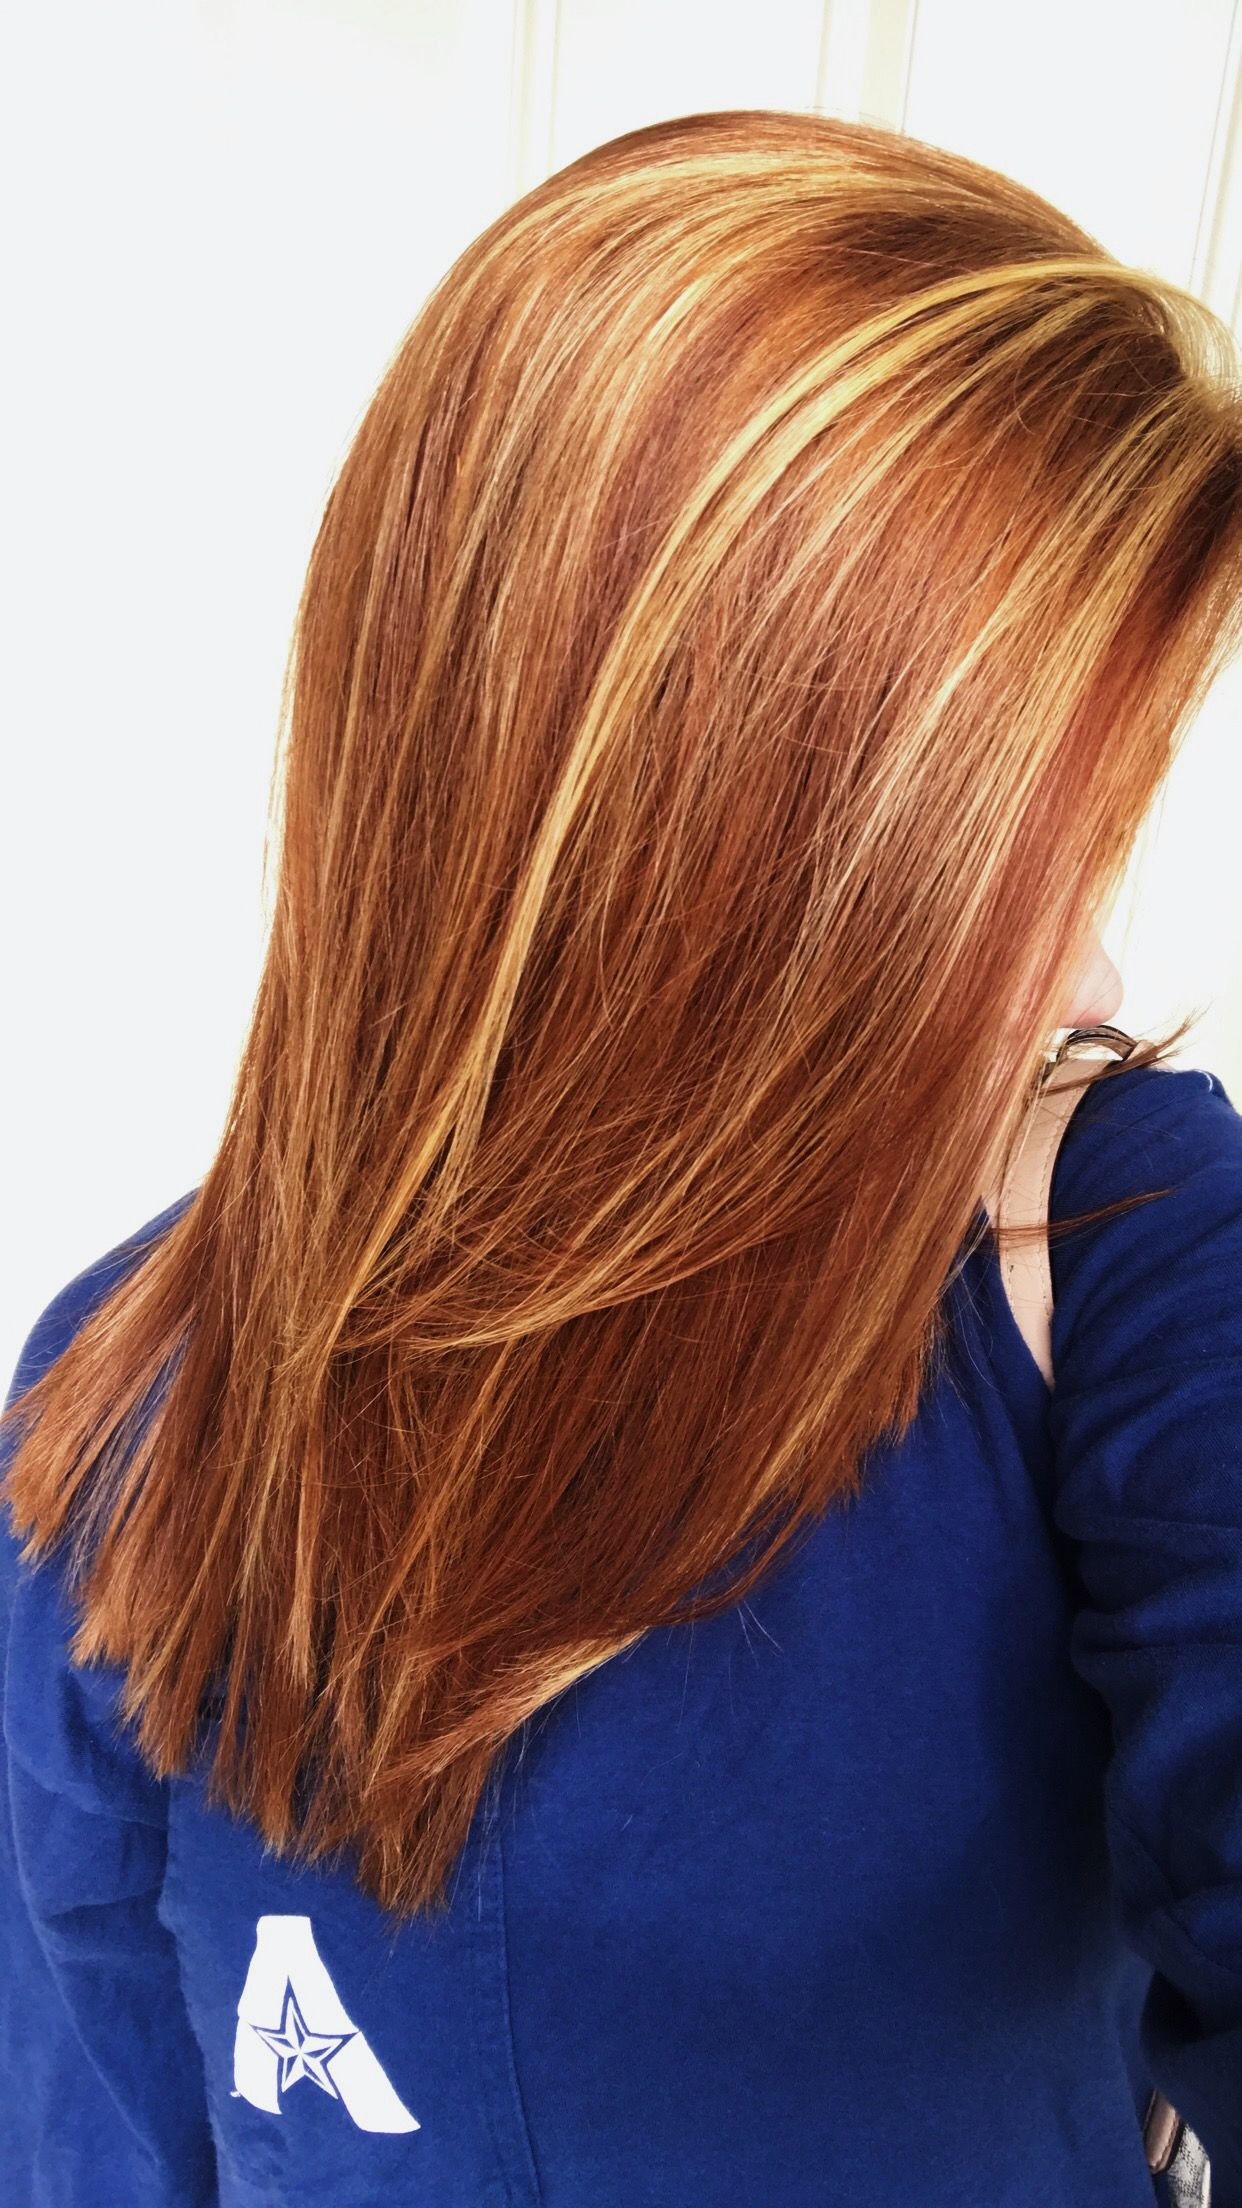 2019 year for lady- Red with hair strawberry blonde highlights